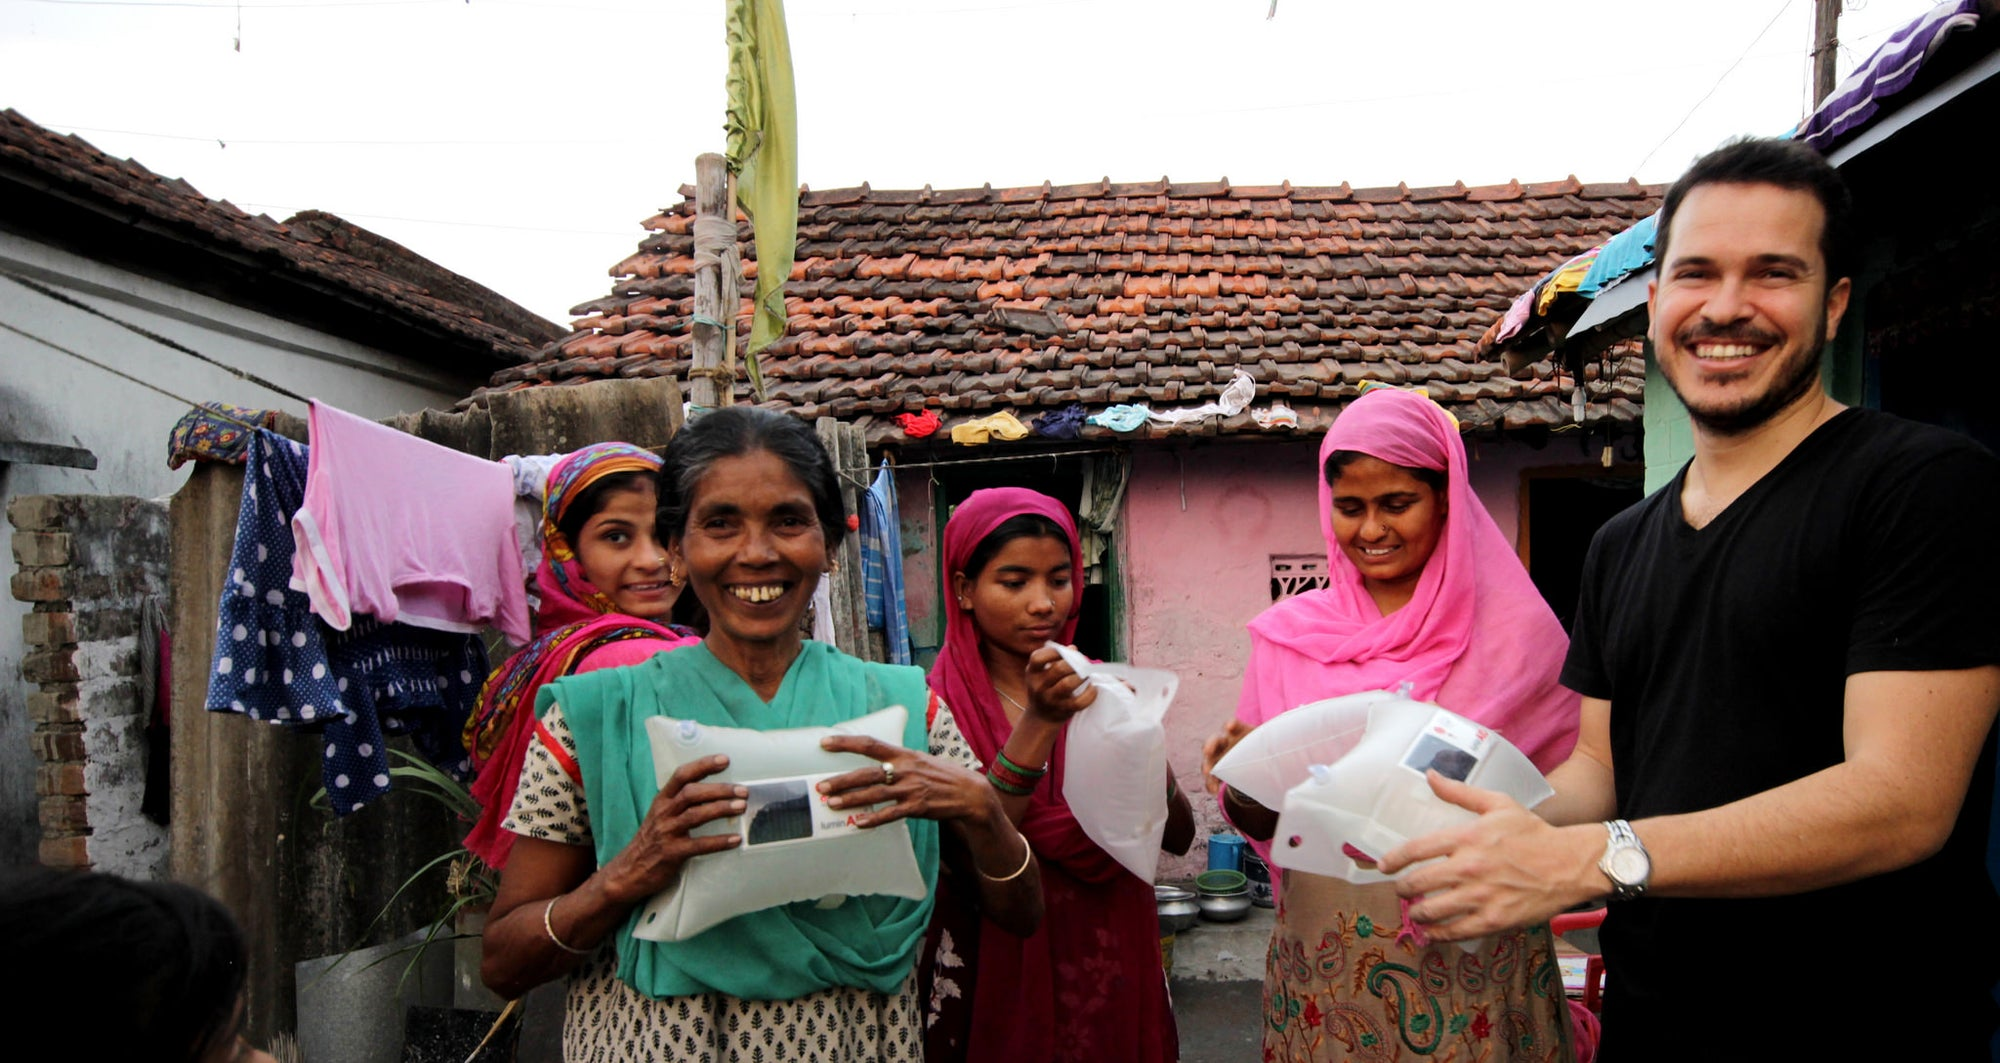 Notes from the Field: Solar Lighting for Improving Health, Education in Impoverished India